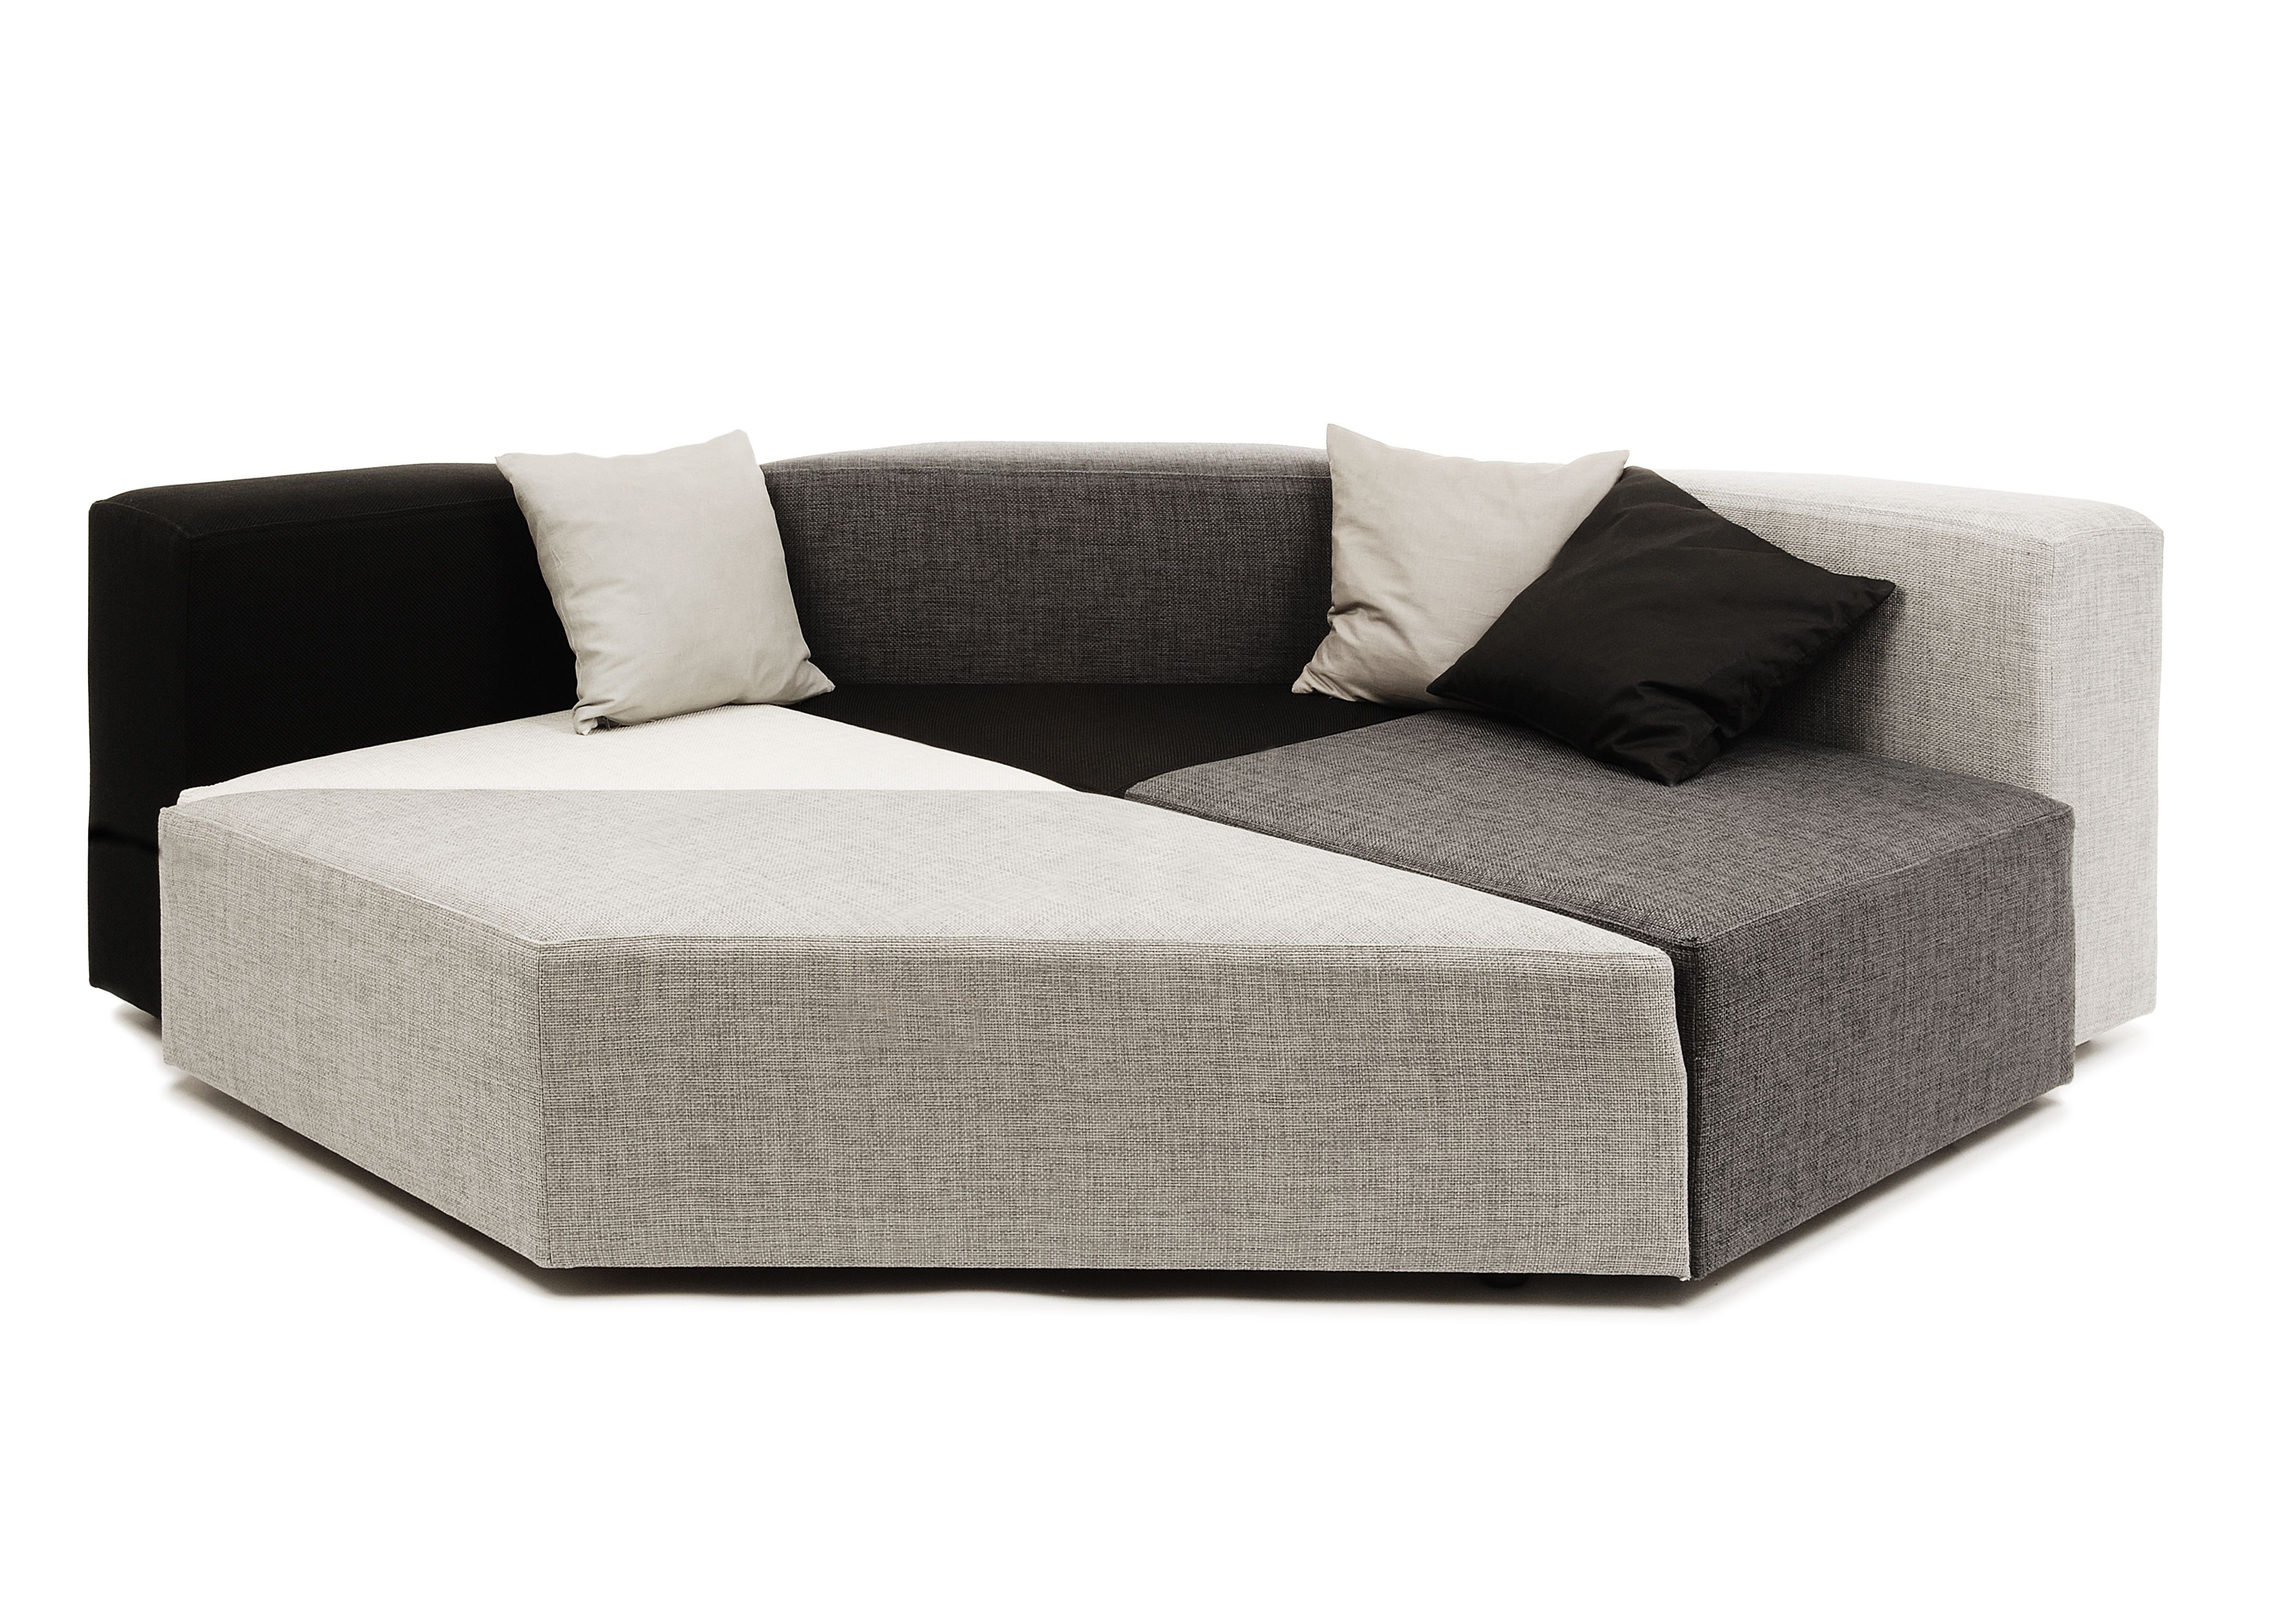 Small Modular Sofa Sectionals Https Www Otoseriilan Com In 2020 Small Sectional Sofa Modular Sectional Sofa Sofas For Small Spaces